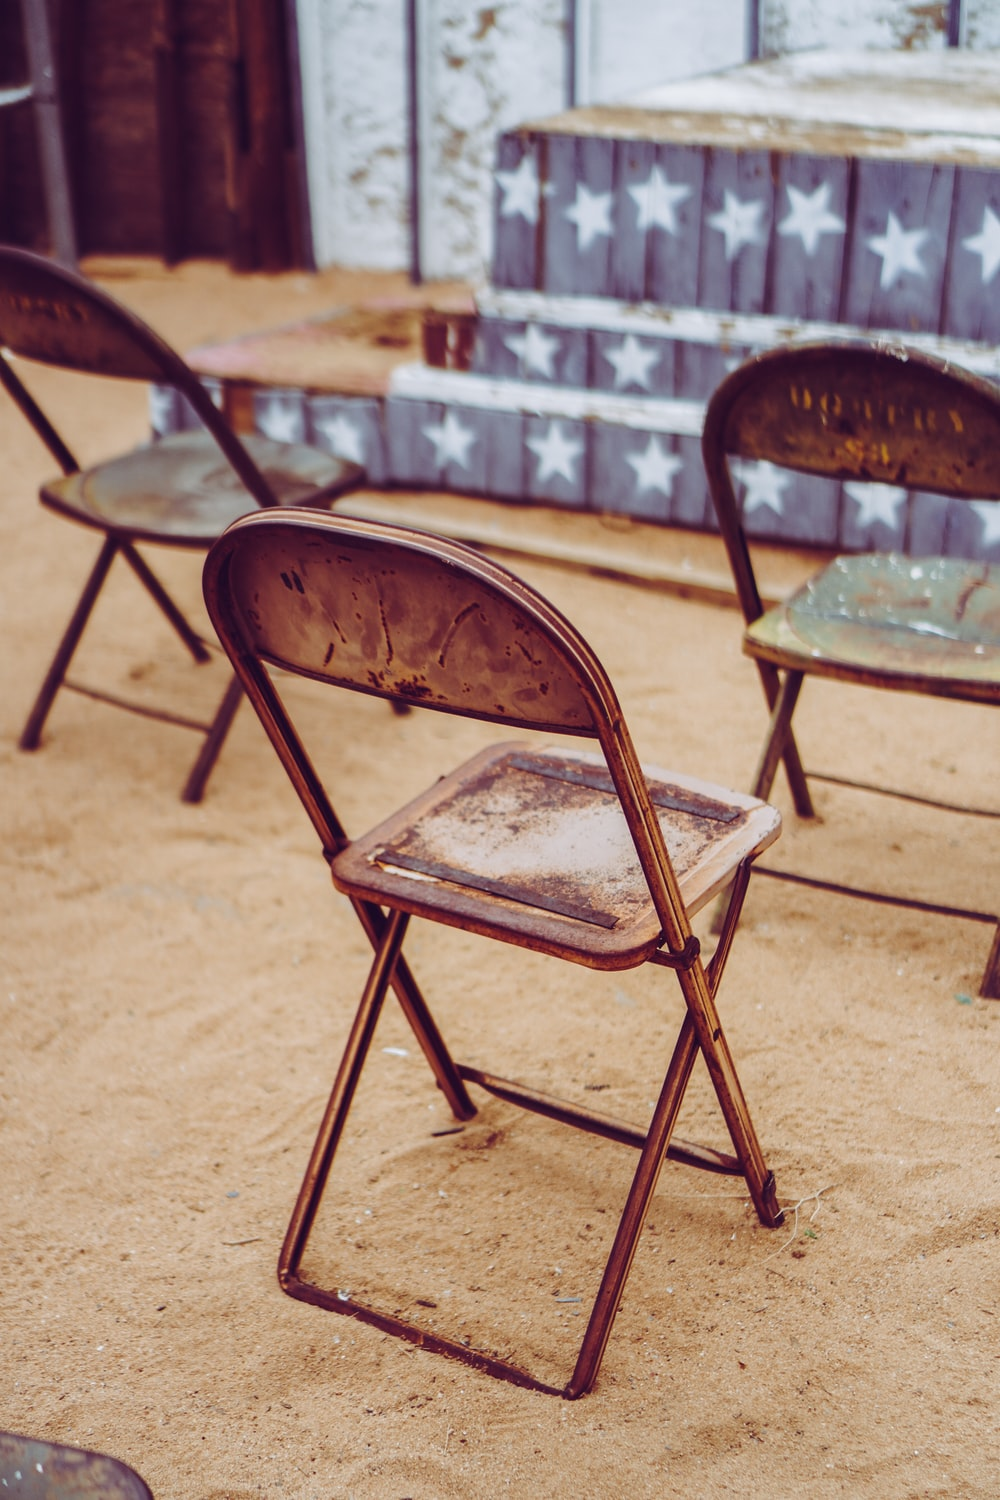 brown wooden folding chair on brown sand during daytime